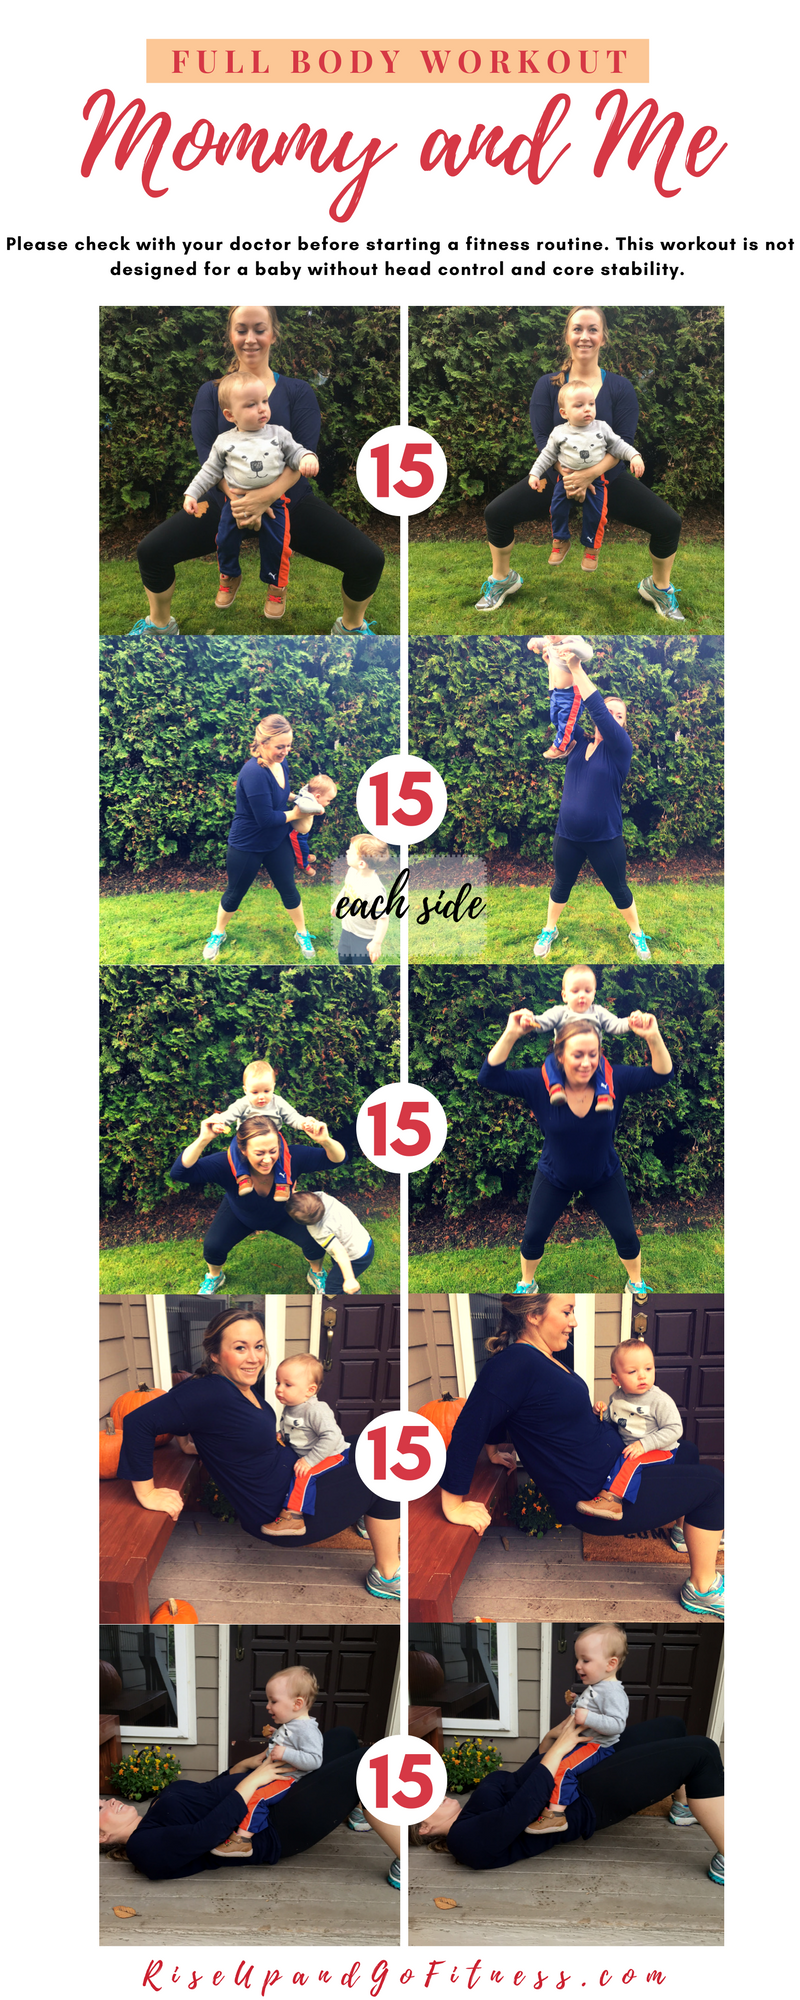 Full body Mommy and Me workout. Involving your kids with your daily tasks like fitness doesn't have to be impossible.